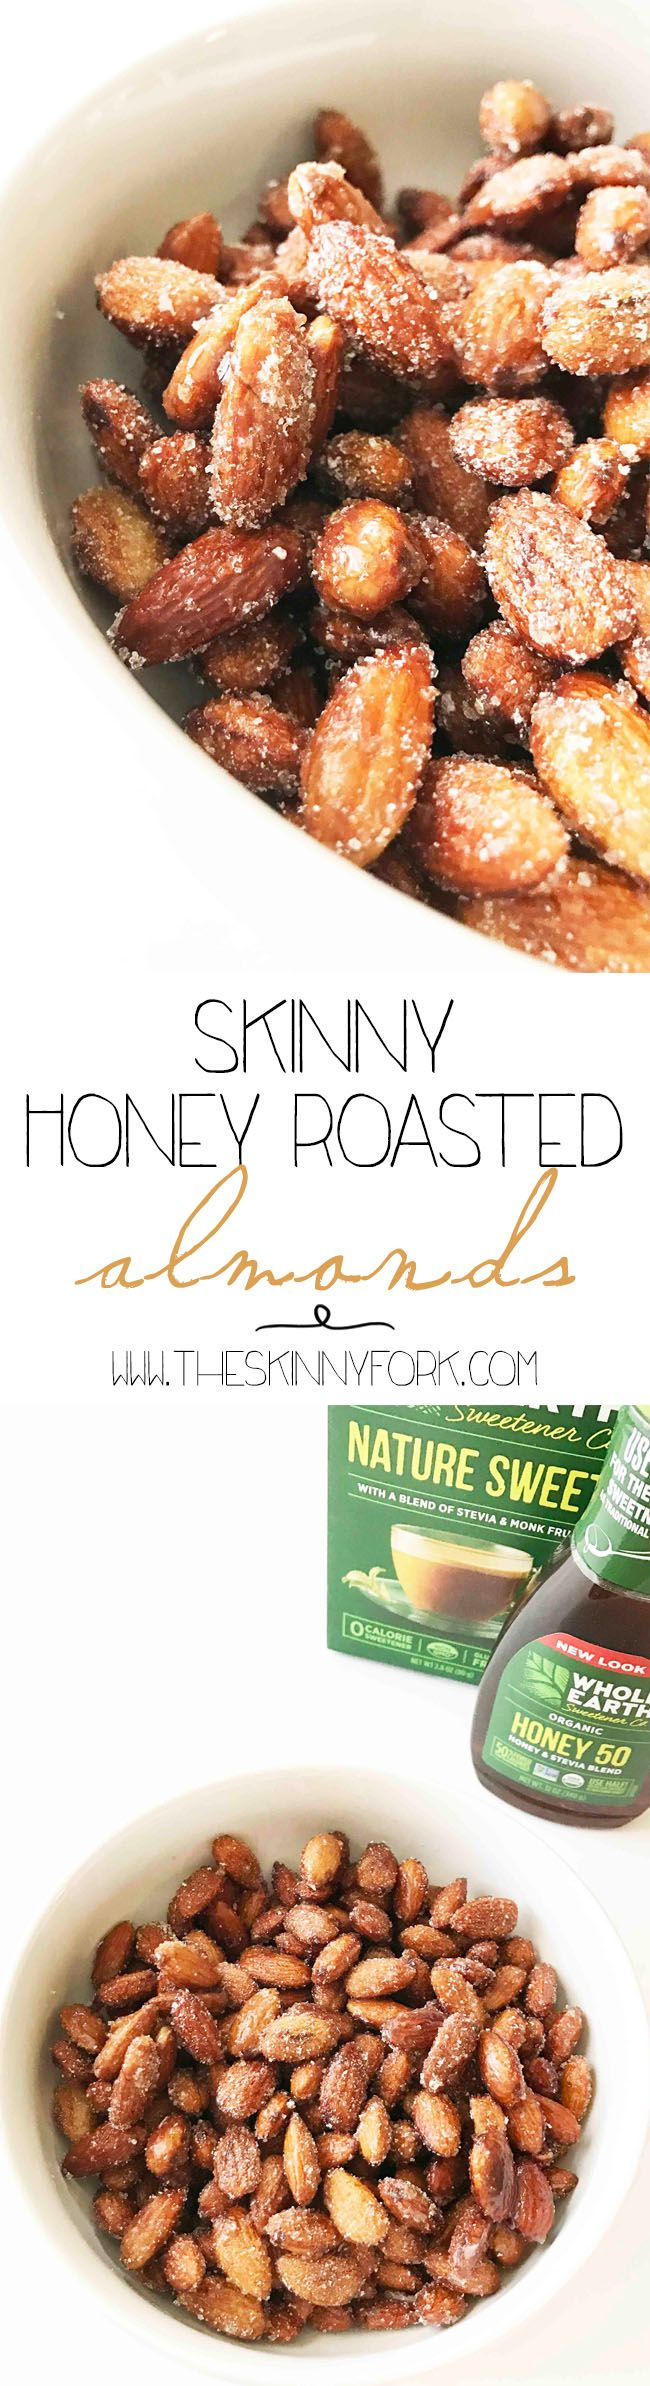 It's time to #RethinkSweet with these Skinny Honey Roasted Almonds with @WholeEarthSweetner! Yes, you did in fact read that correctly! Whip up a quick batch of these almonds and have them on hand for a more wholesome snack. Trust me though, know one will ever guess they are better-for-you because they taste amazing. #Ad